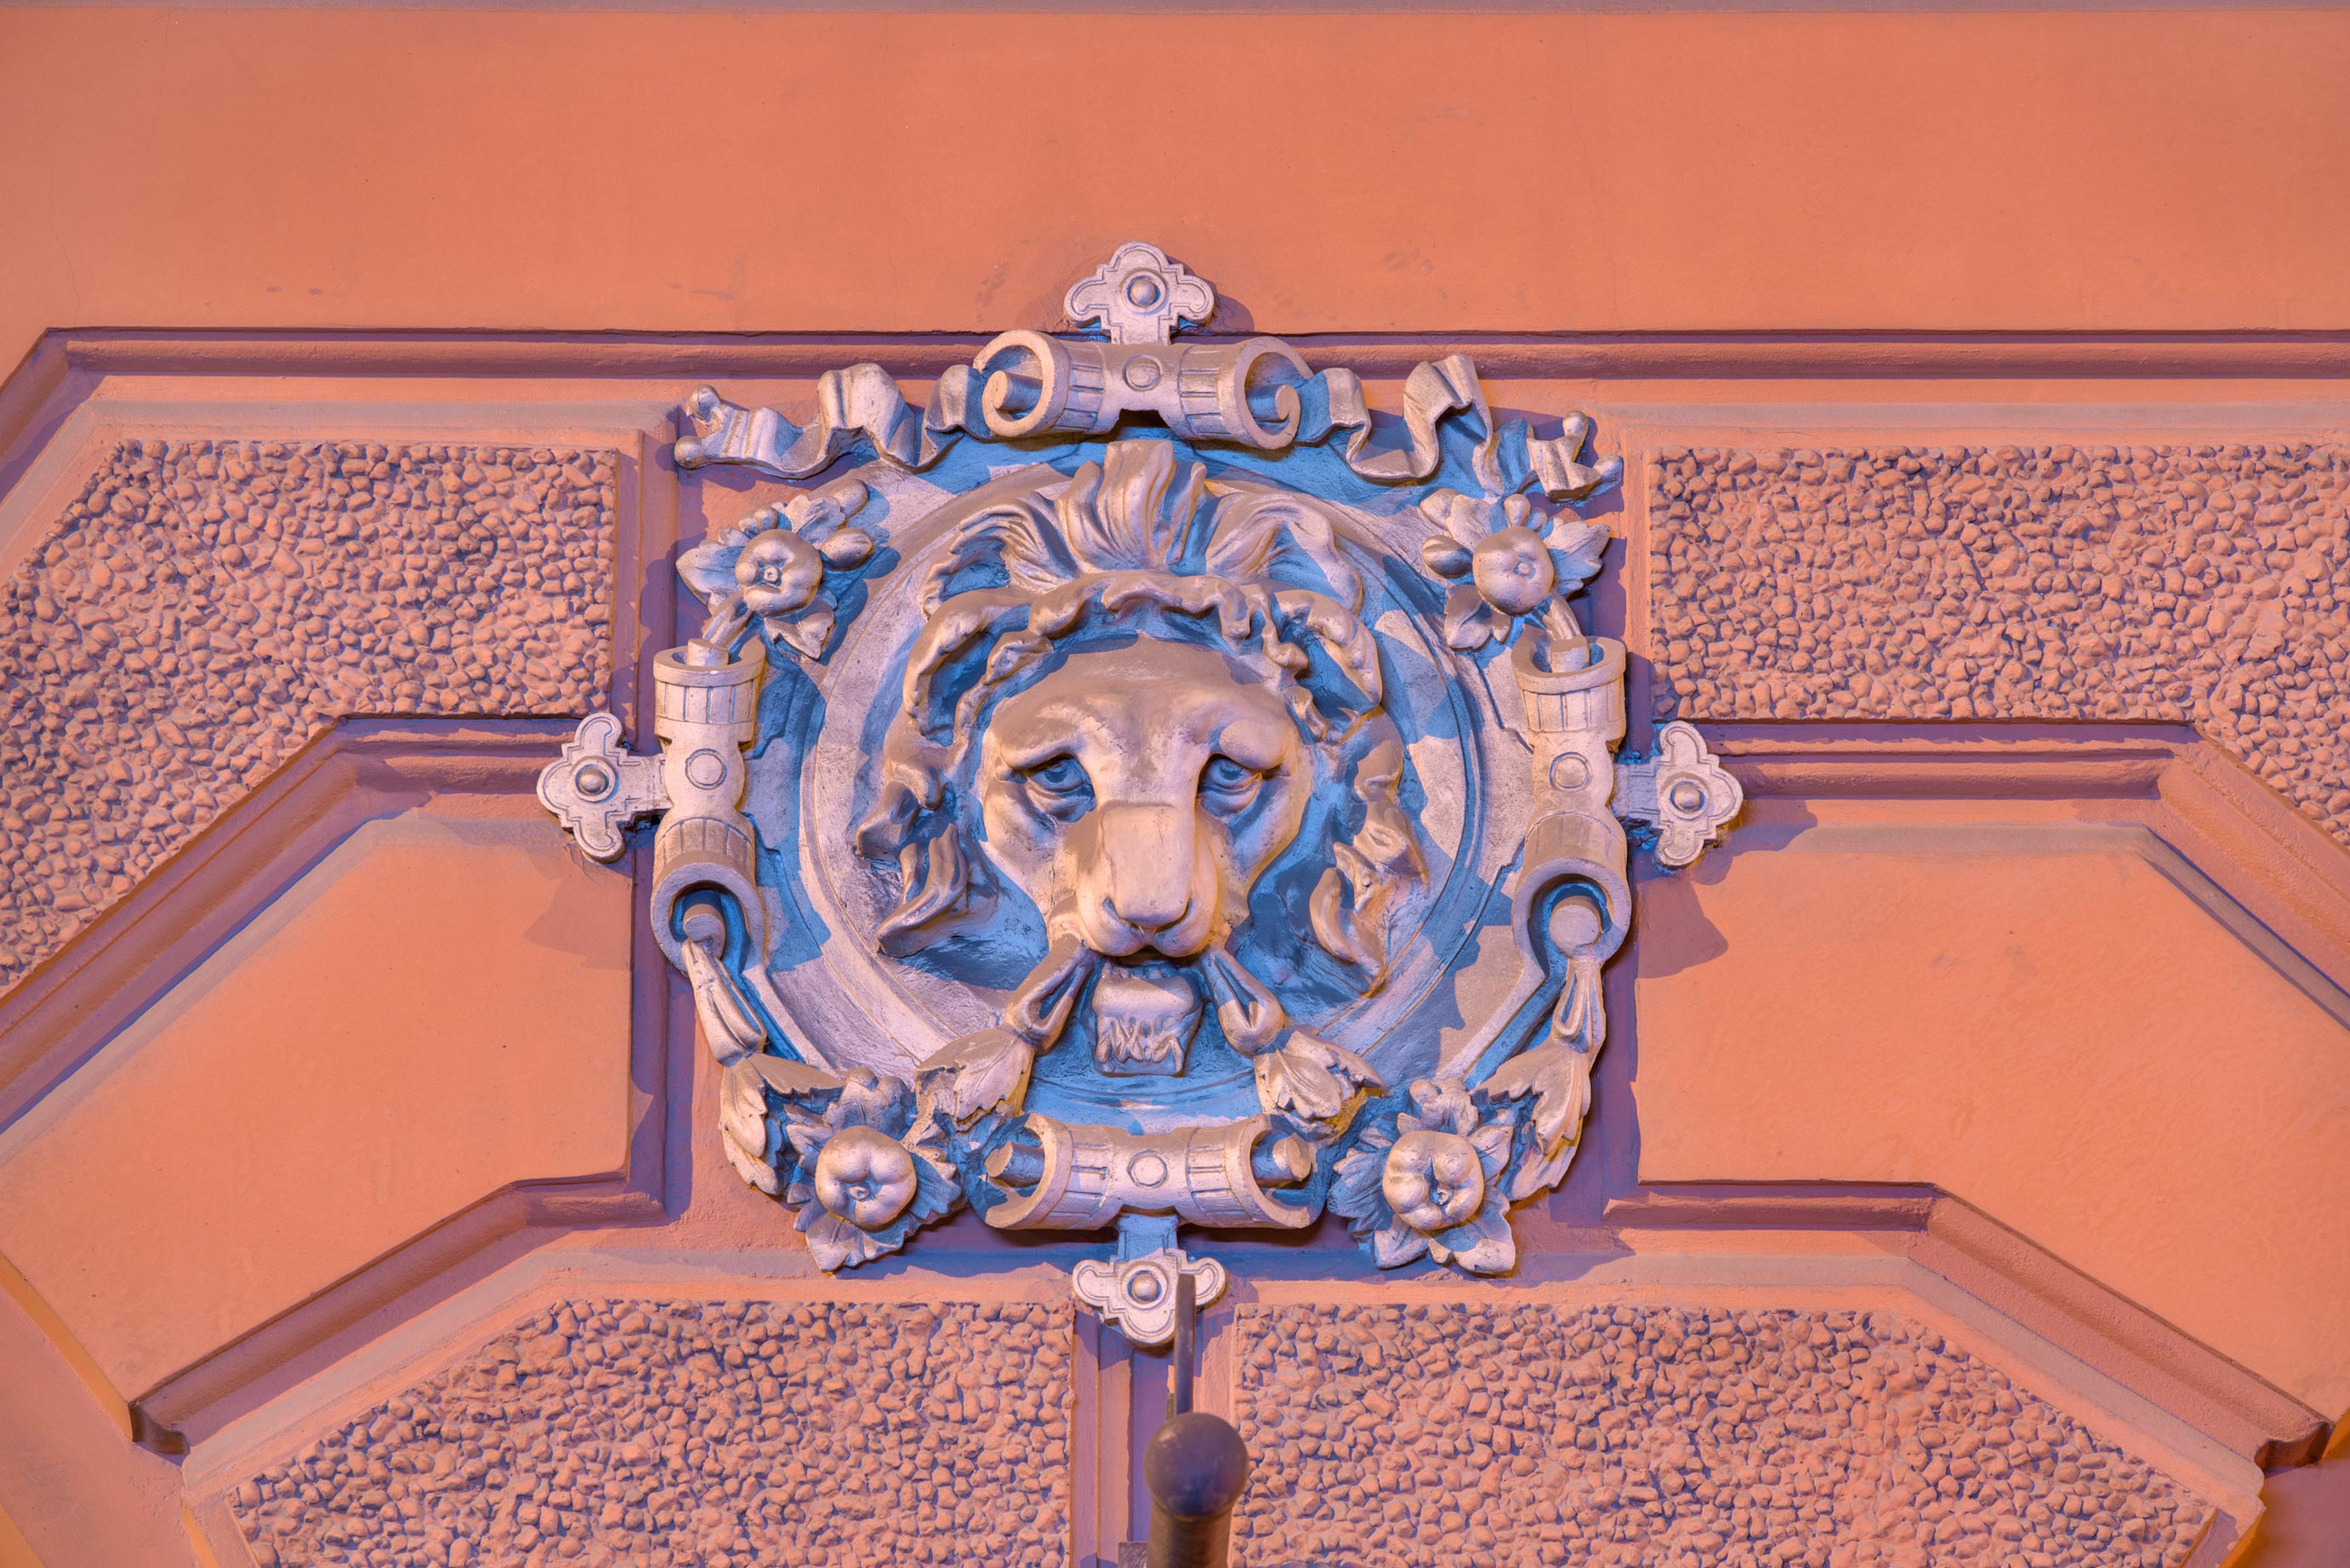 Lion's face on Bankovsky Pereulok. St.Petersburg, Russia